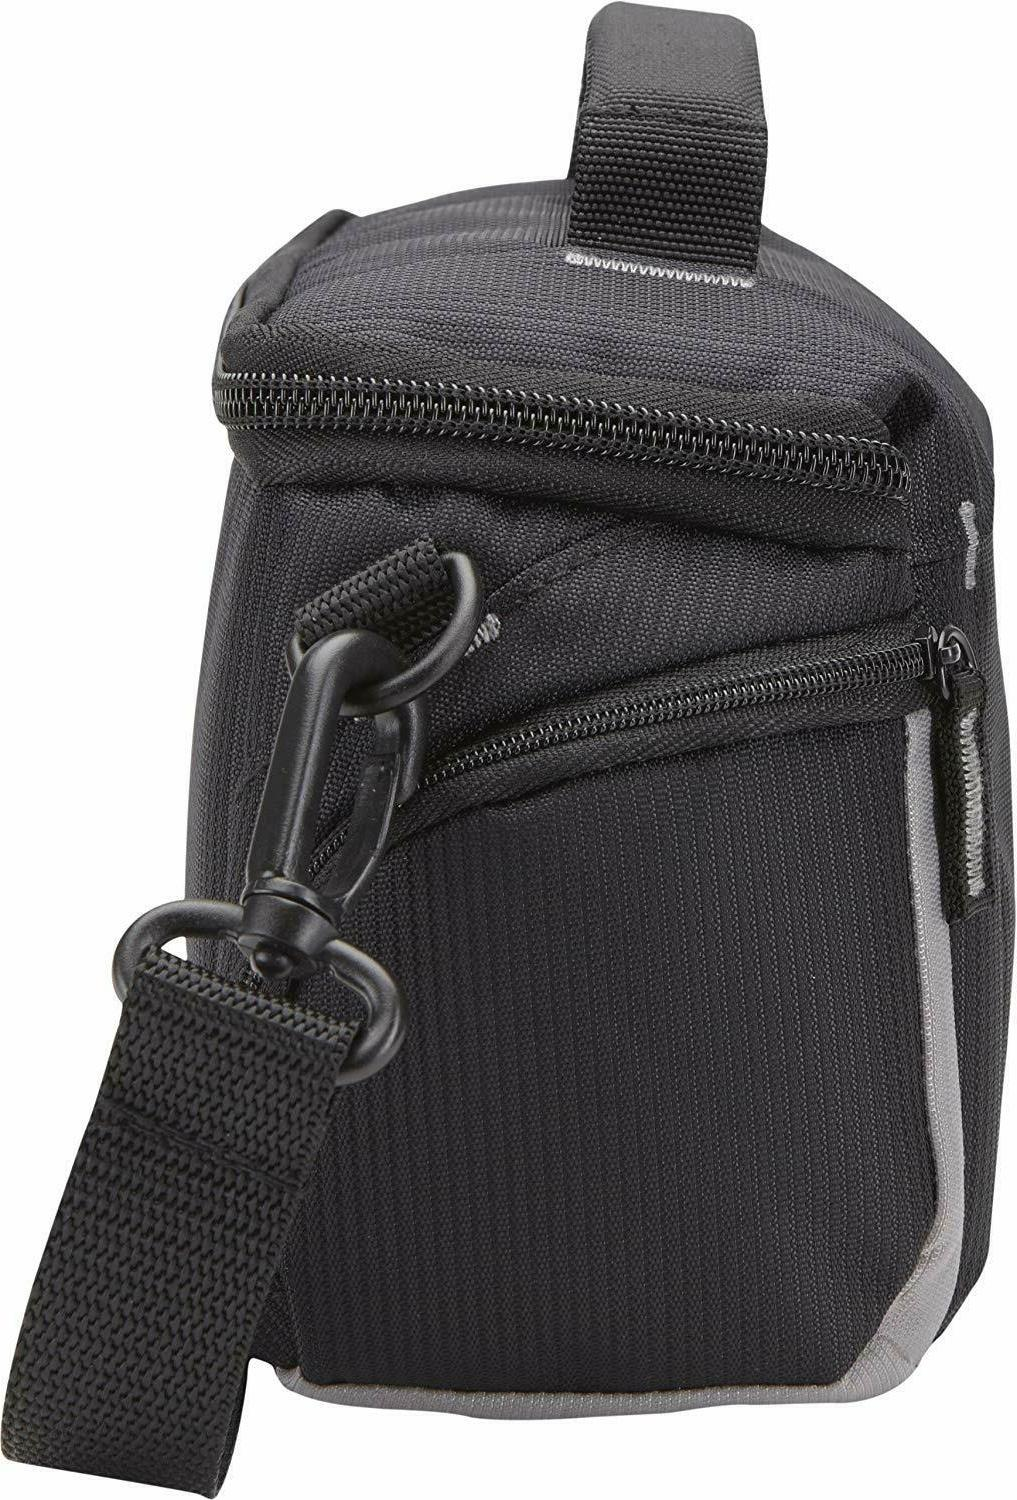 DSLR Camera Camcorder Shoulder Strap Carry Case TBC-305